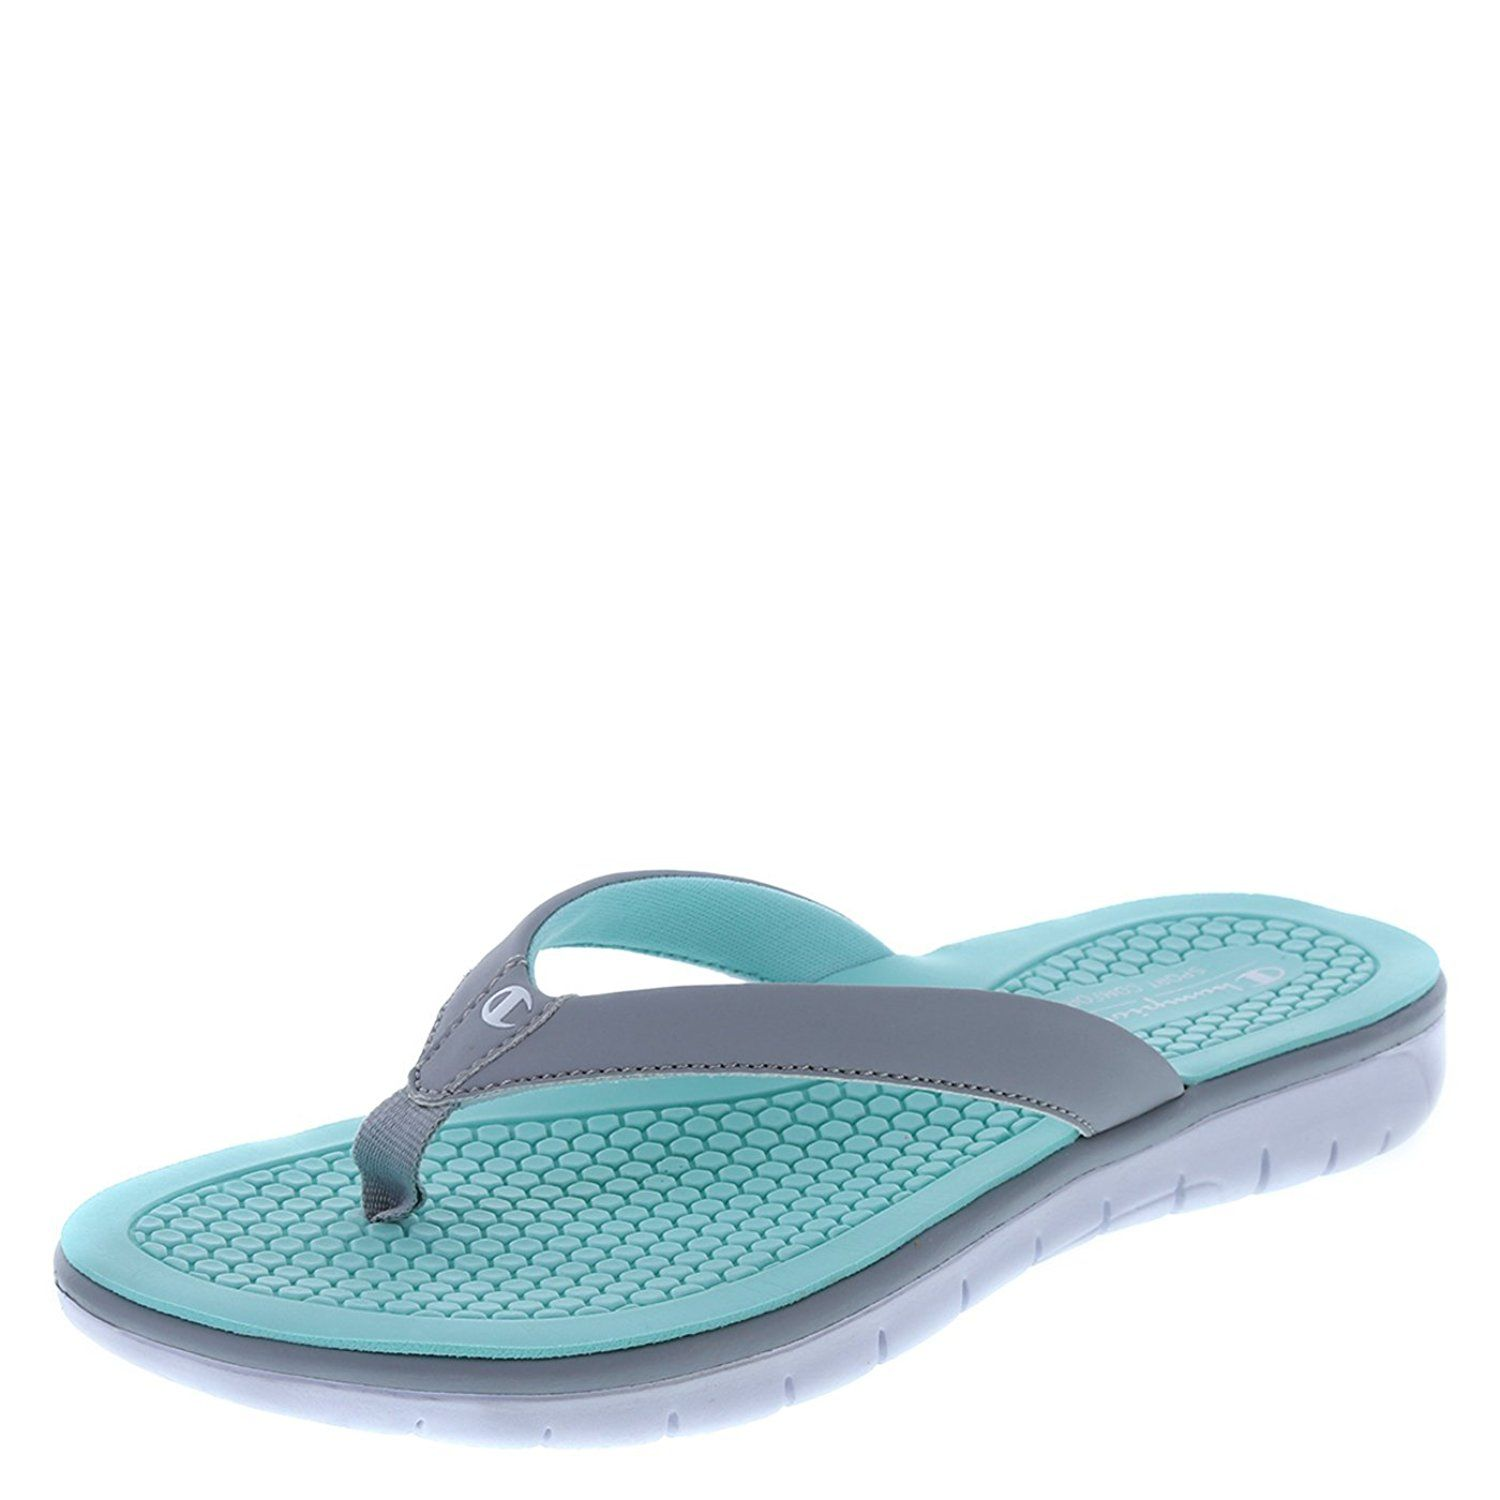 Champion Women S Gusto Flip Flop Insider S Special Review You Can T Miss Read More Outdoor Sandals Women Sport Sandals Sport Flip Flops Mens Flip Flops